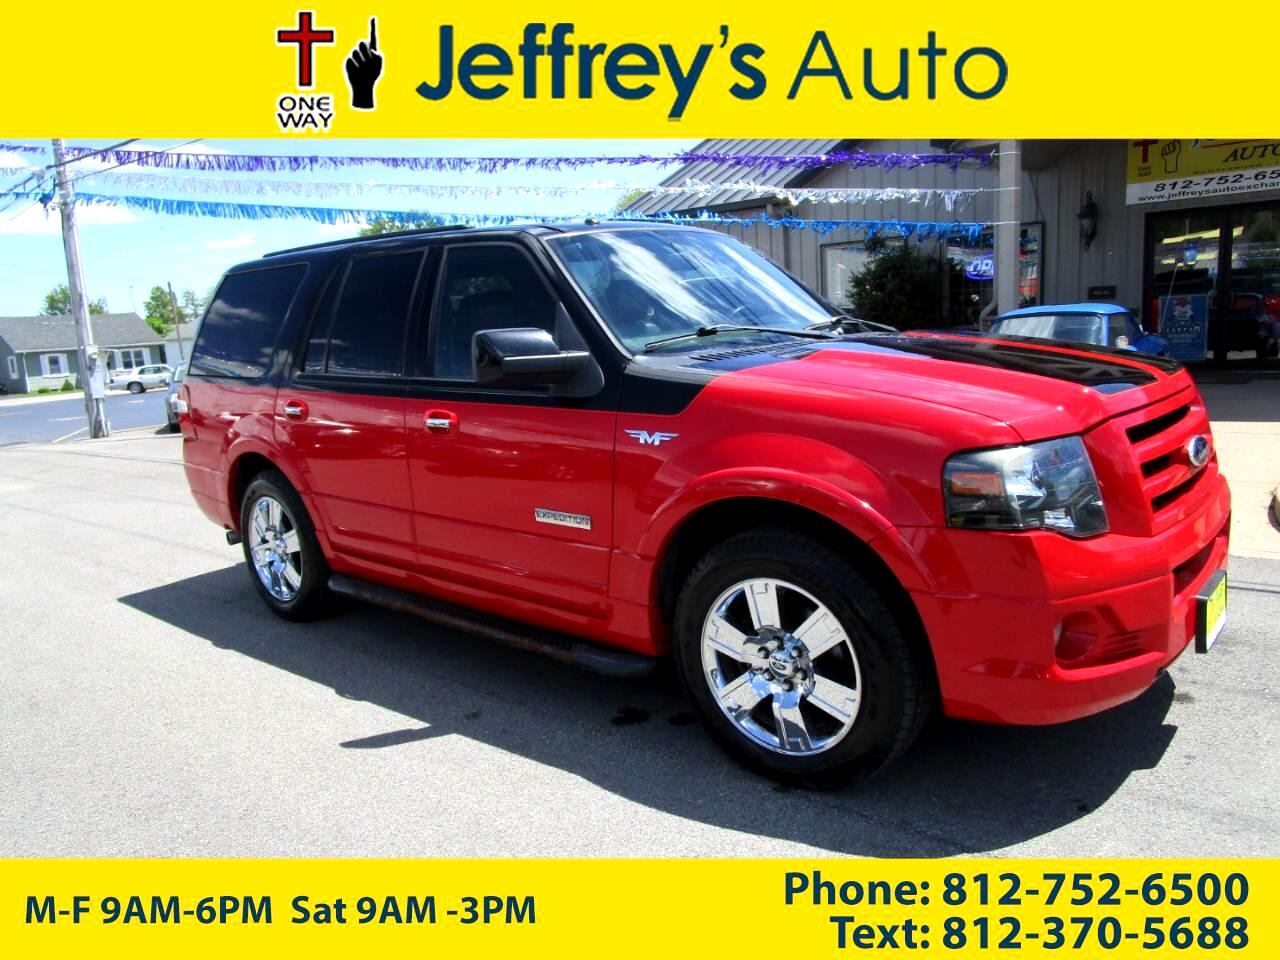 2008 Ford Expedition Funkmaster Flex Limited Edition # 166/650